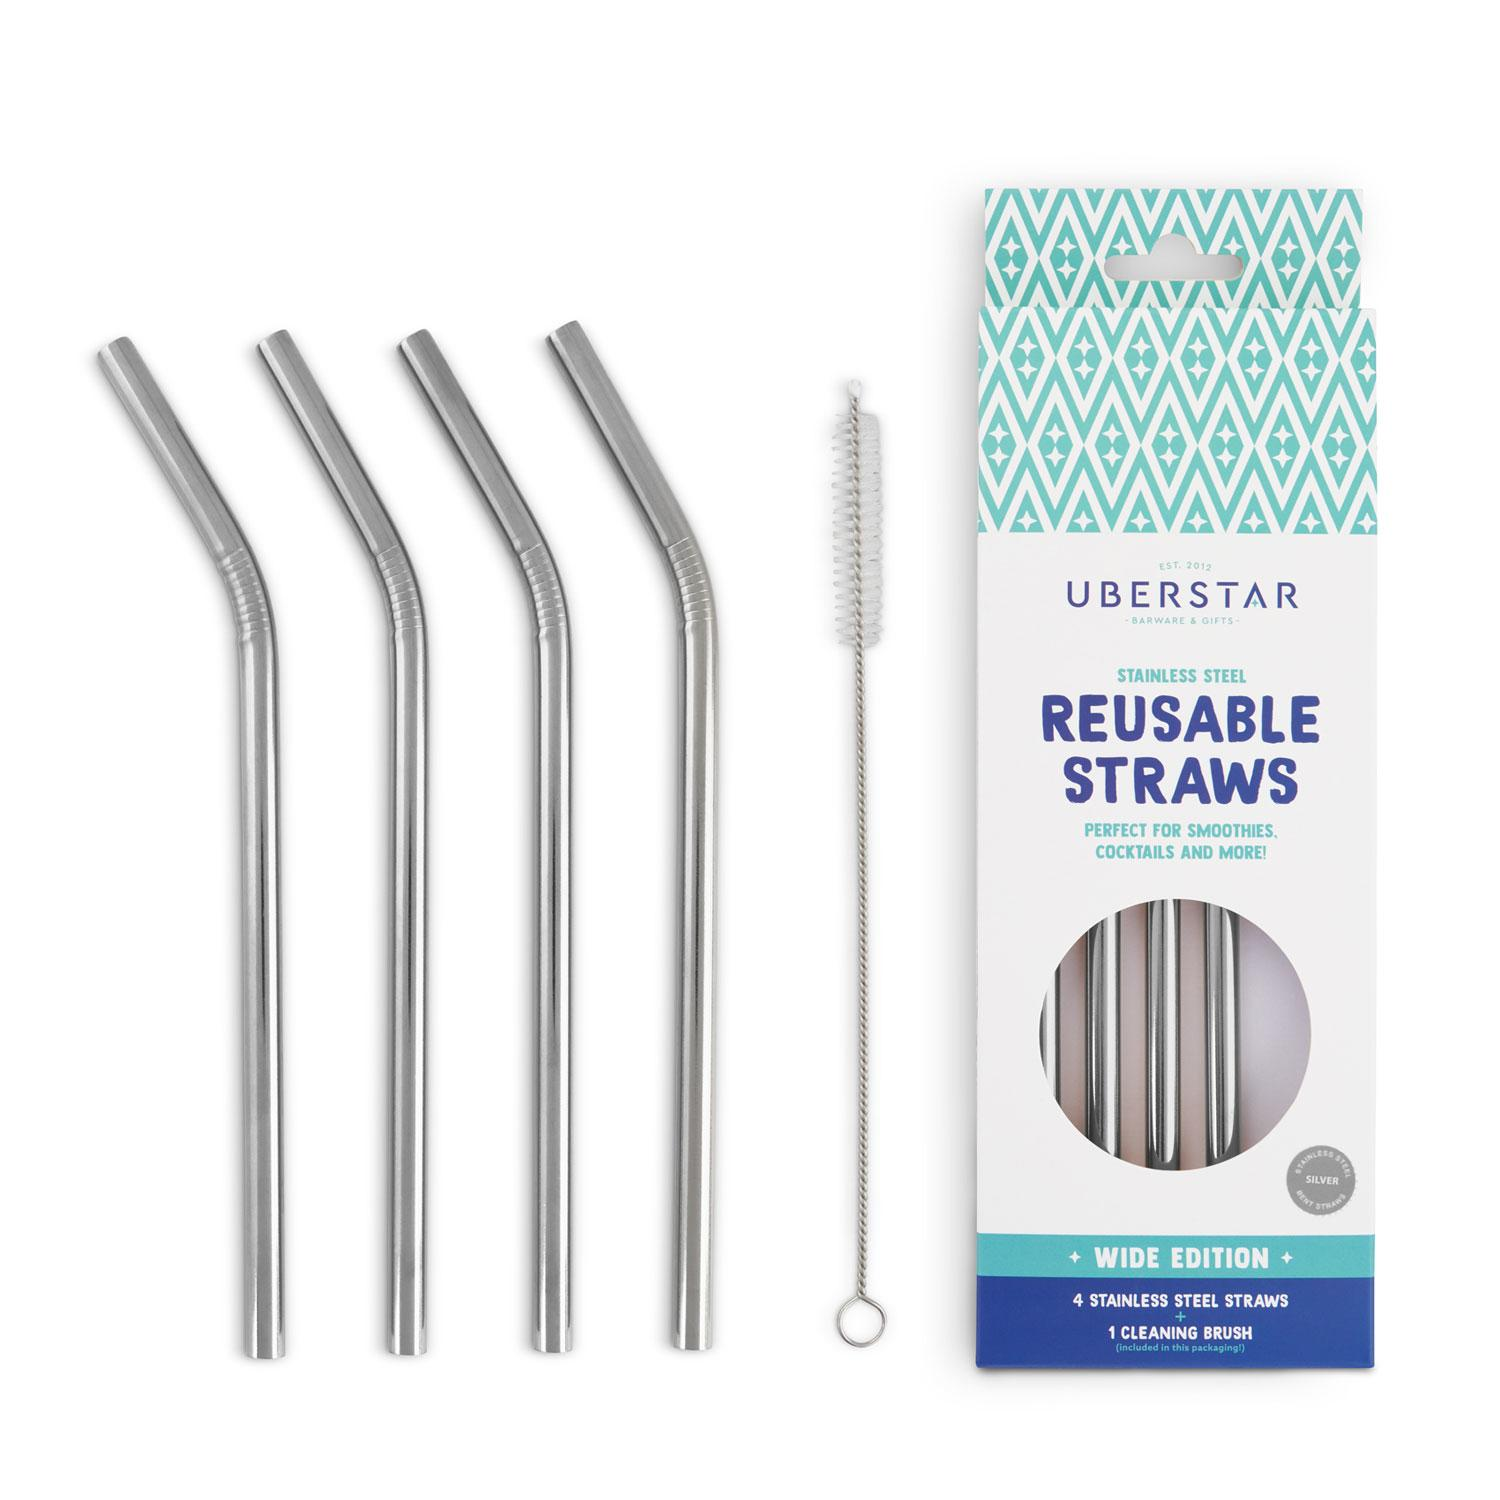 Uberstar Reusable Stainless Steel Straws (4 Pack)